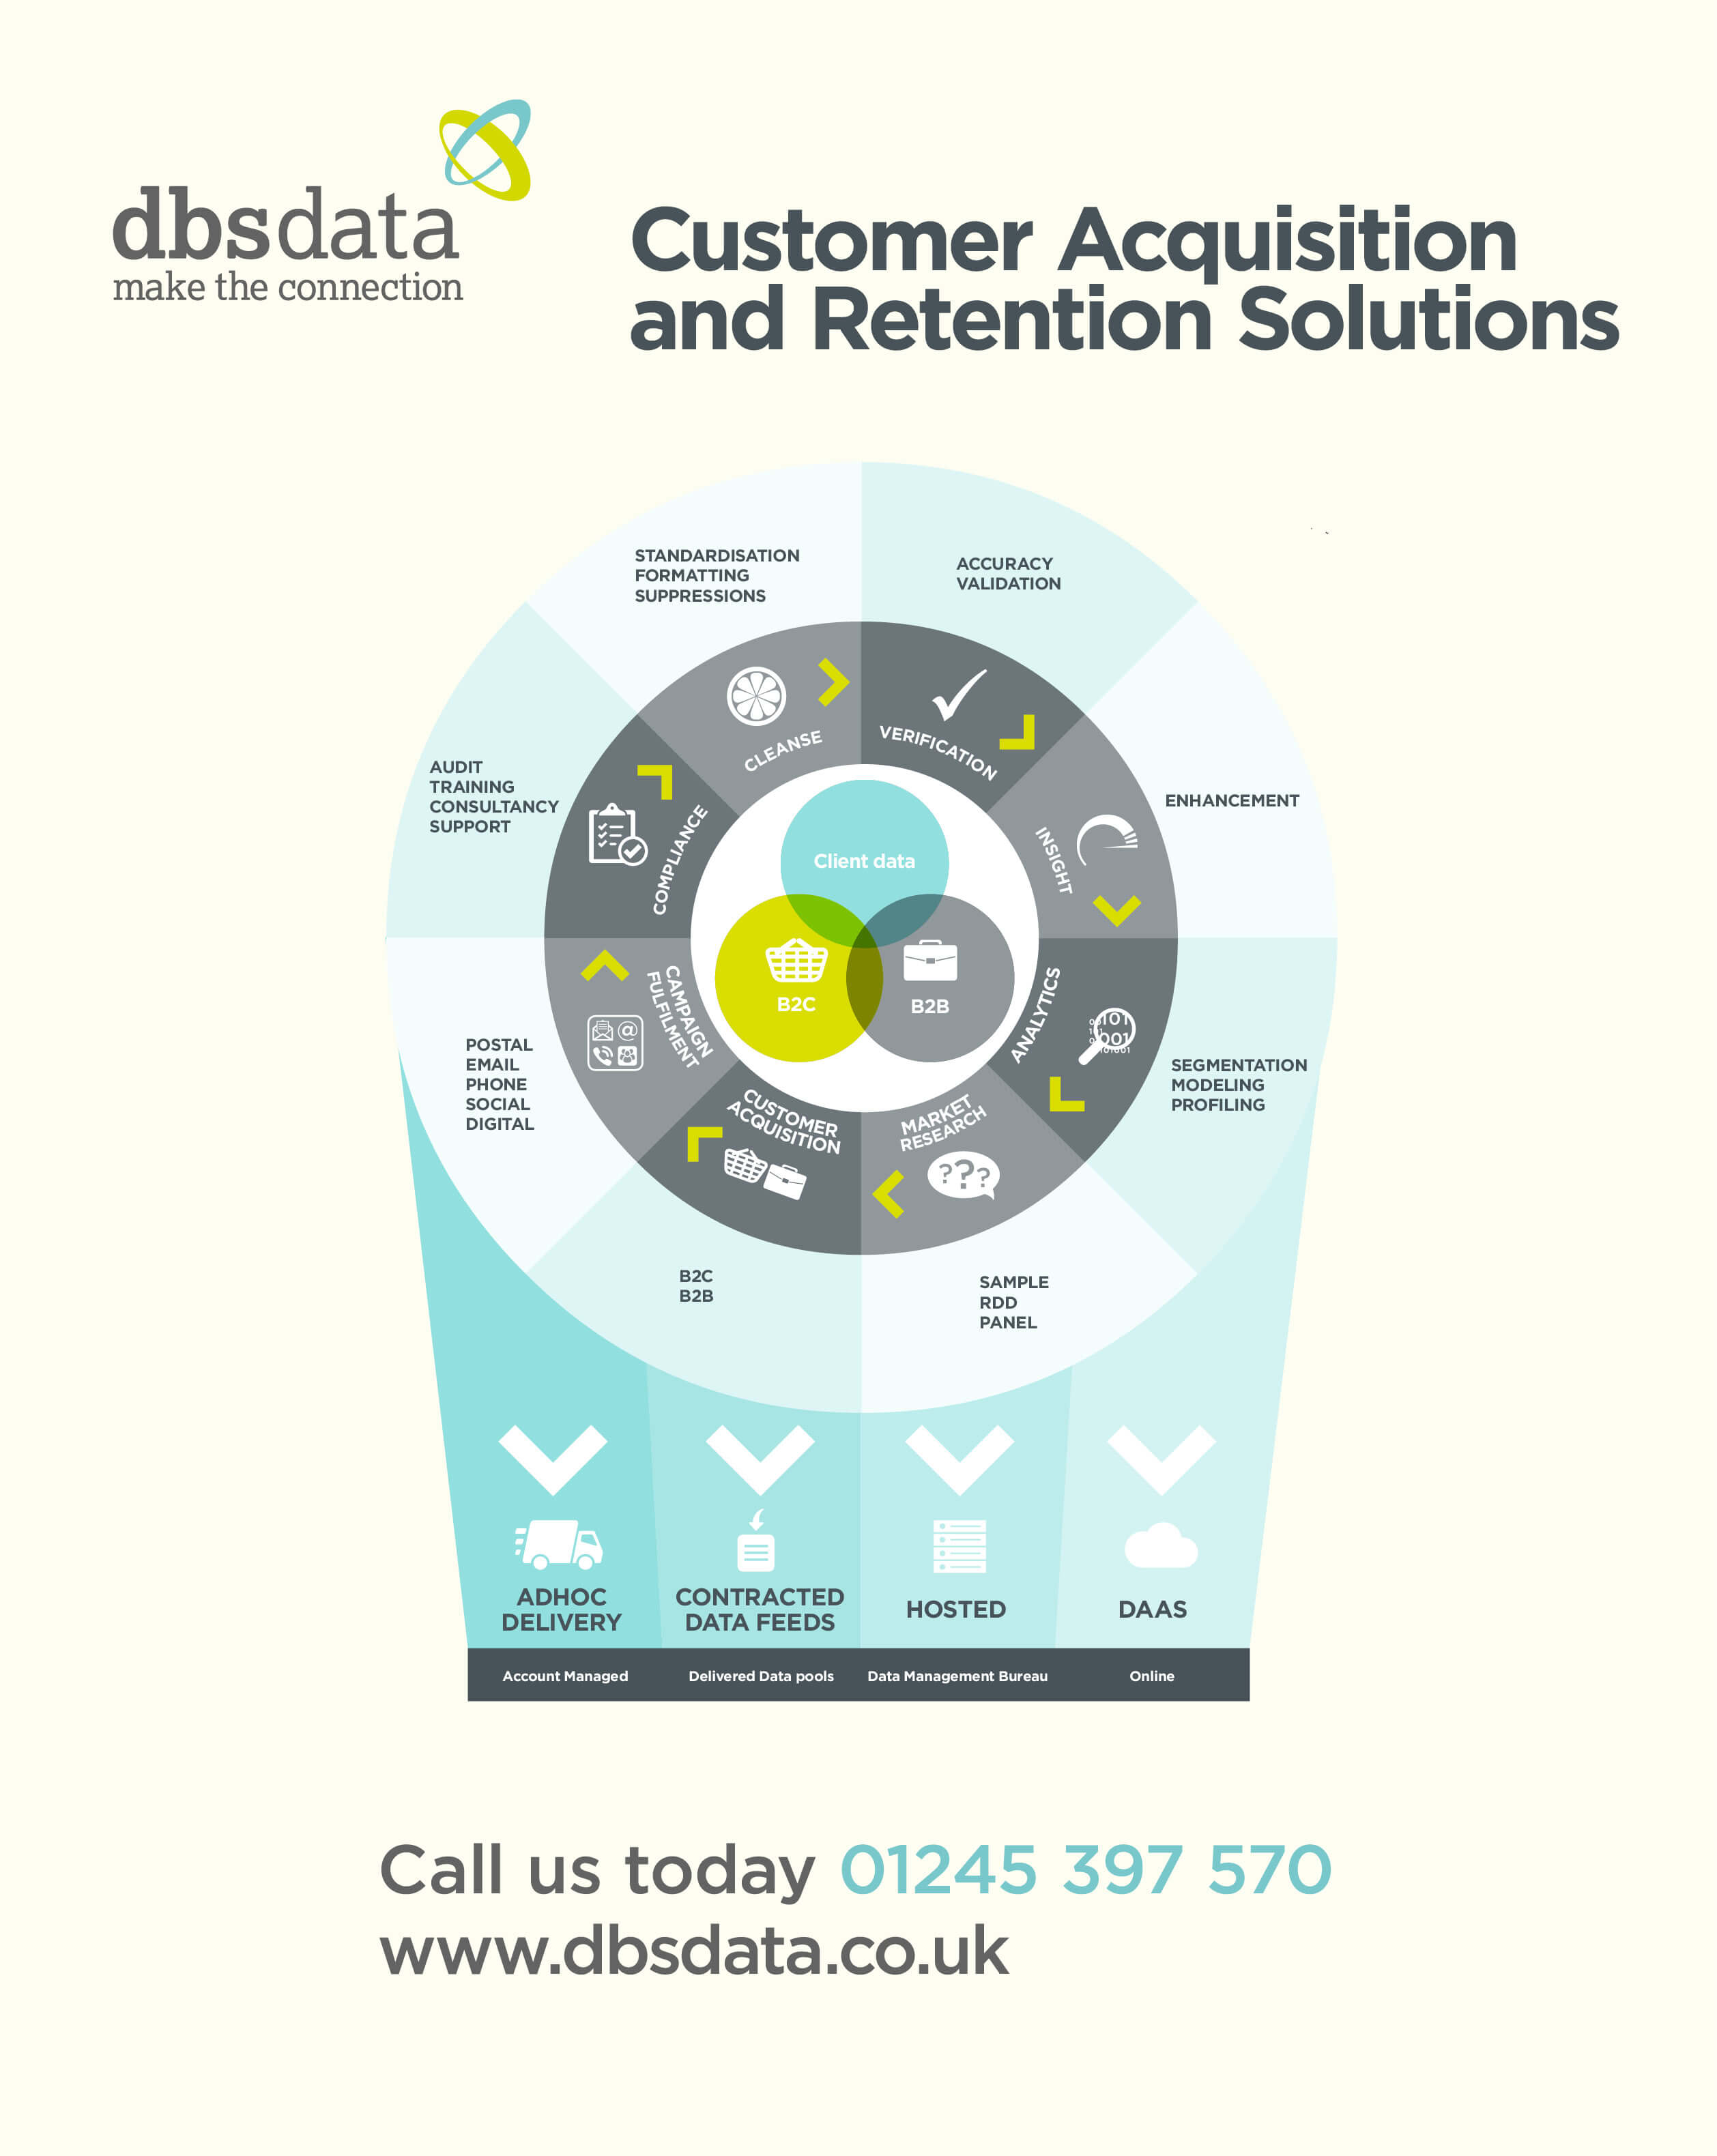 DBS Data Customer Acquisition and Retention Solutions